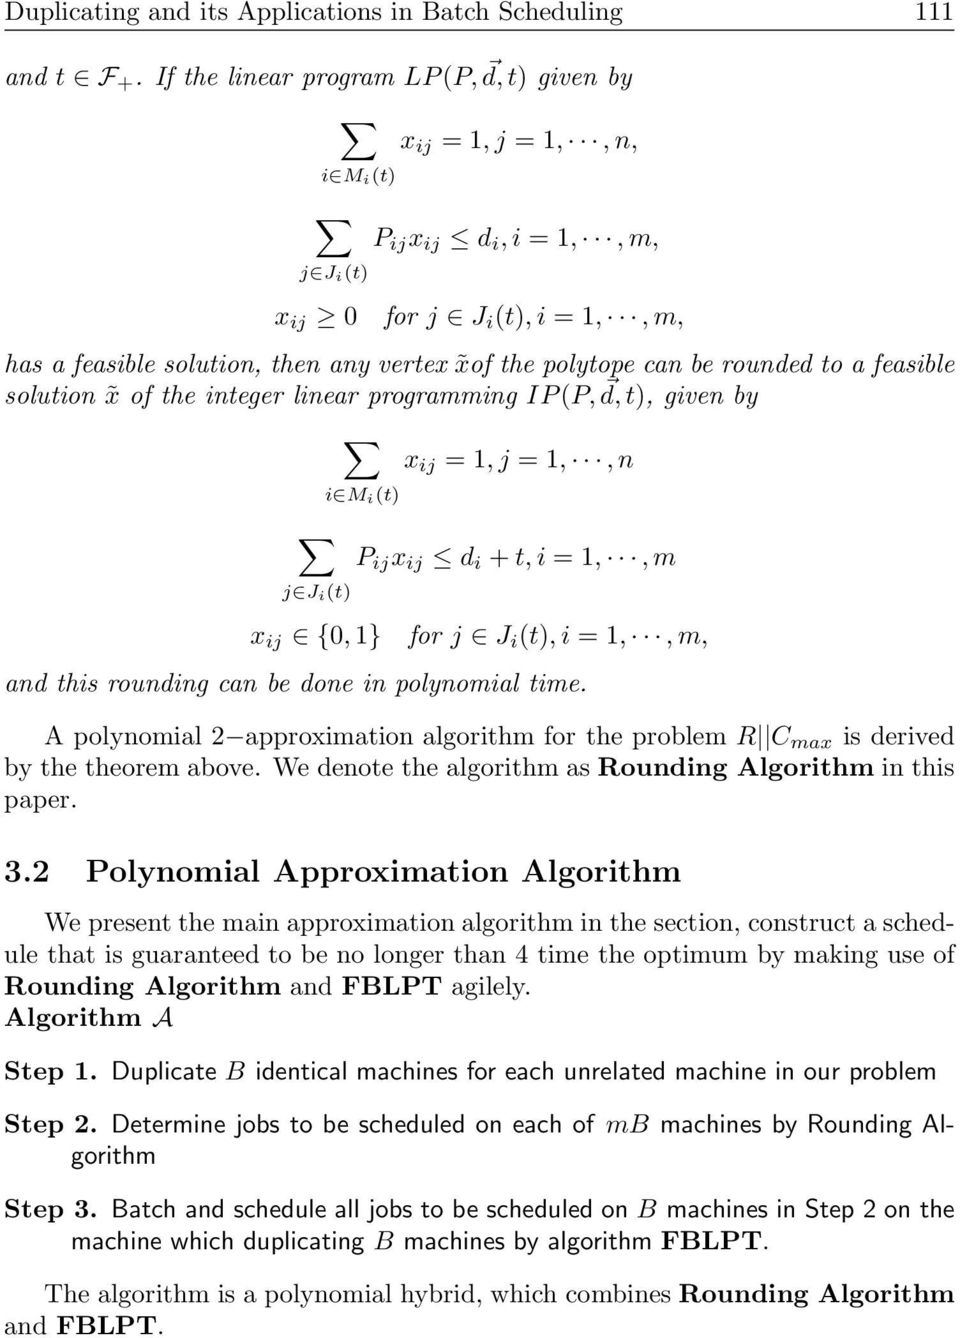 be rounded to a feasible solution x of the integer linear programming IP(P, d, t), given by j J i(t) i M i(t) x ij = 1, j = 1,,n P ij x ij d i + t, i = 1,,m x ij {0, 1} for j J i (t), i = 1,,m, and